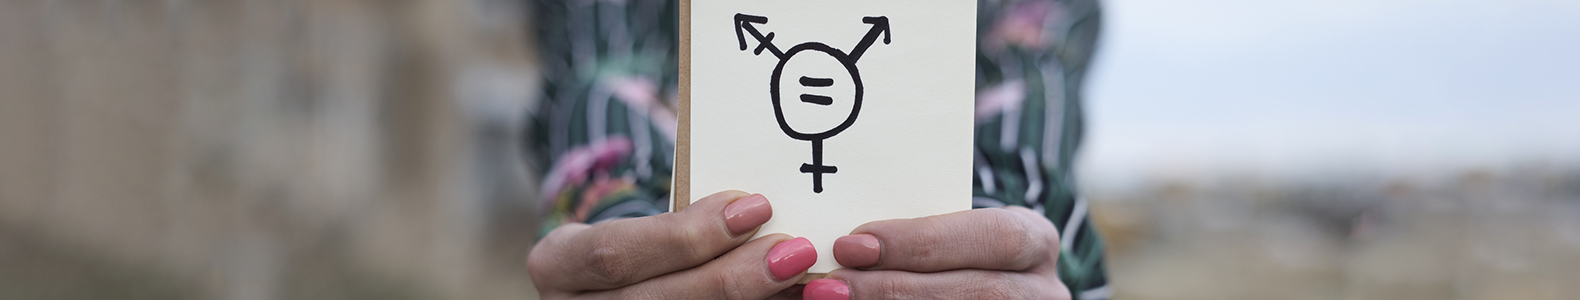 Closeup of hands holding a notepad with a transgender symbol drawn in it.